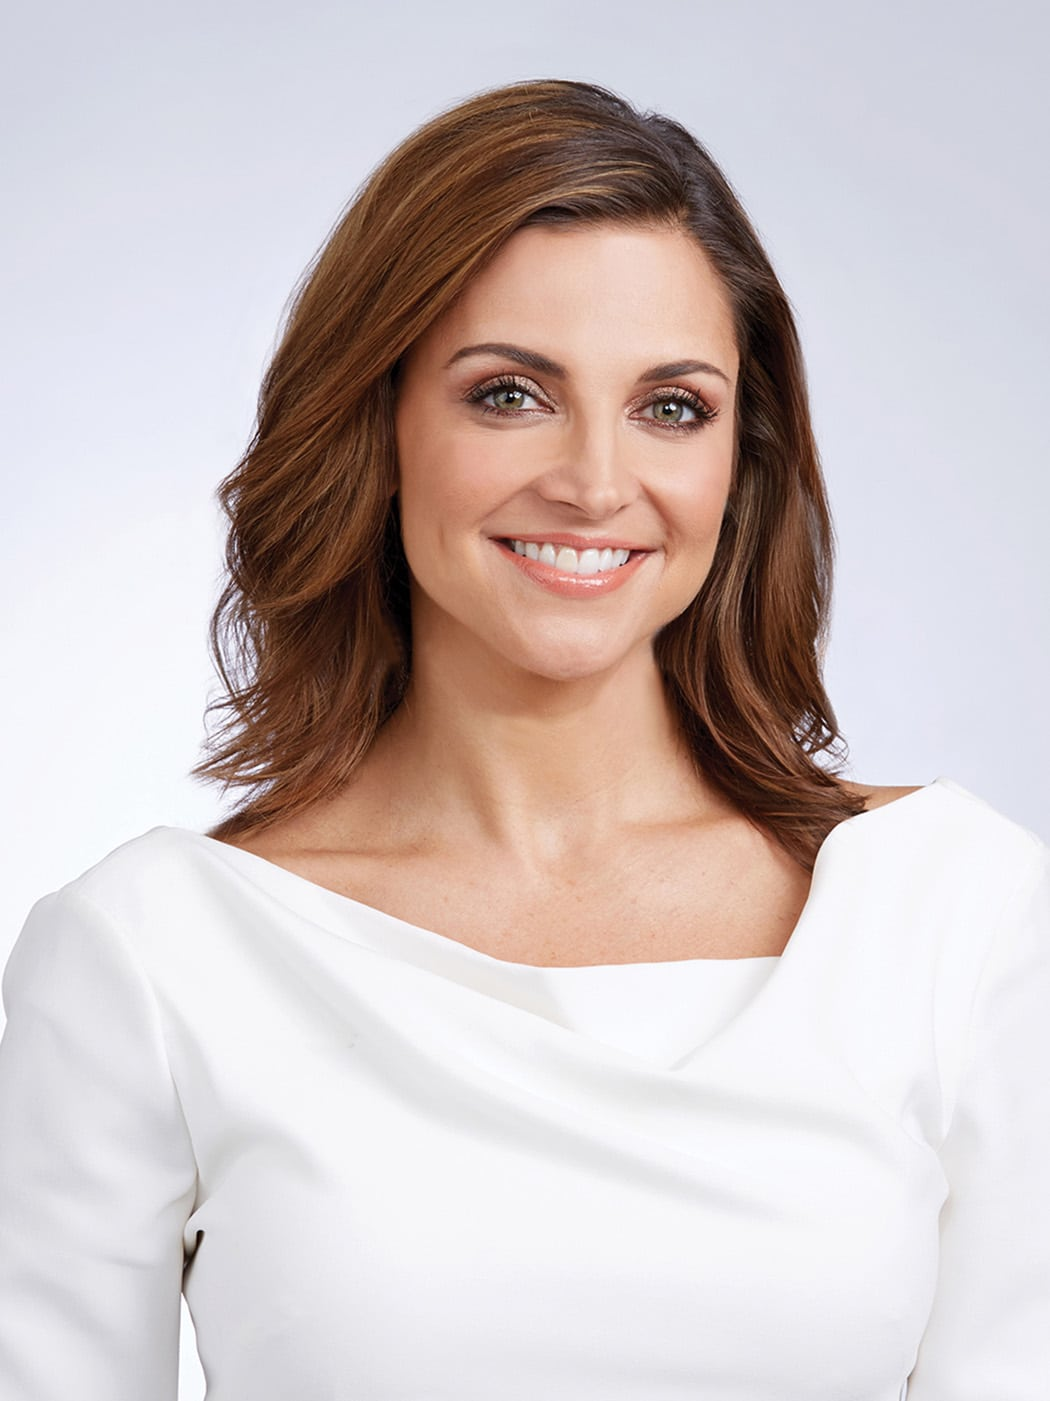 CNLP 345: Paula Faris on Why She Quit Hosting Good Morning America and The View, Decoupling Your Identity from Your Work, and What Journalism Has Taught Her About Leadership